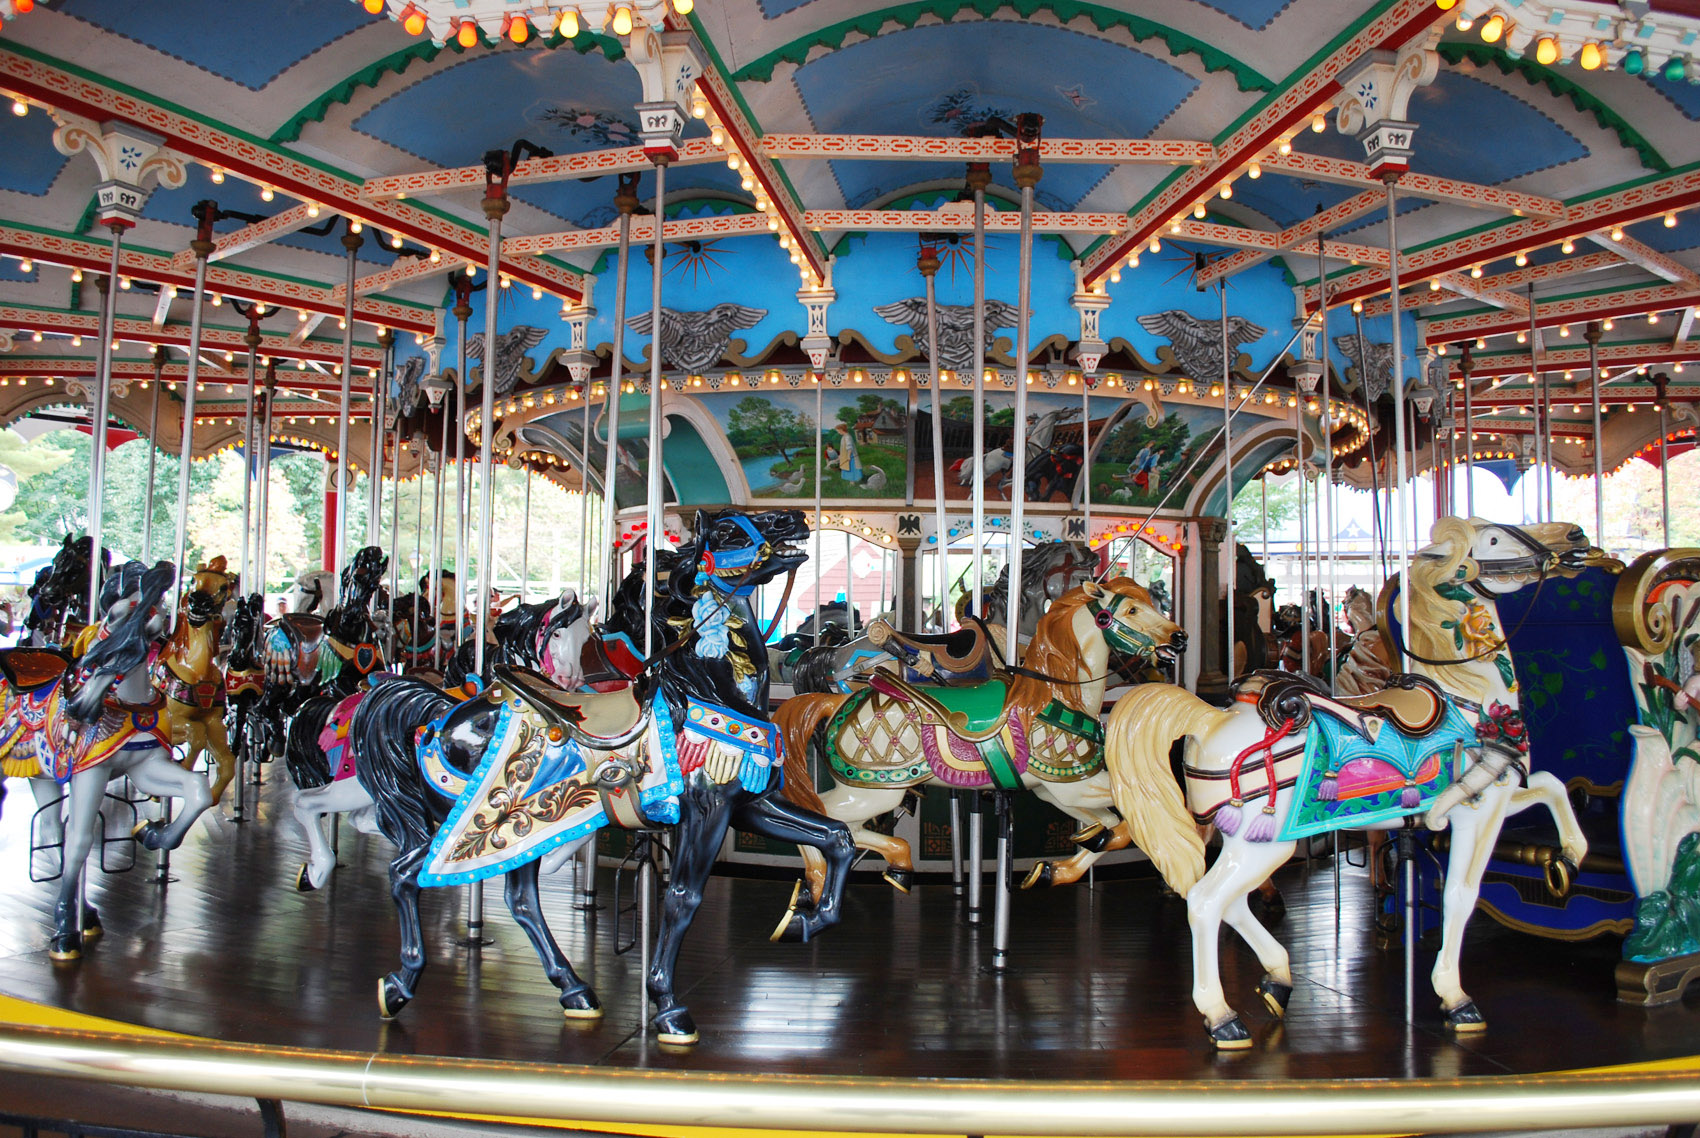 Historic-Hersheypark-1919-PTC-No-47-carousel-wide